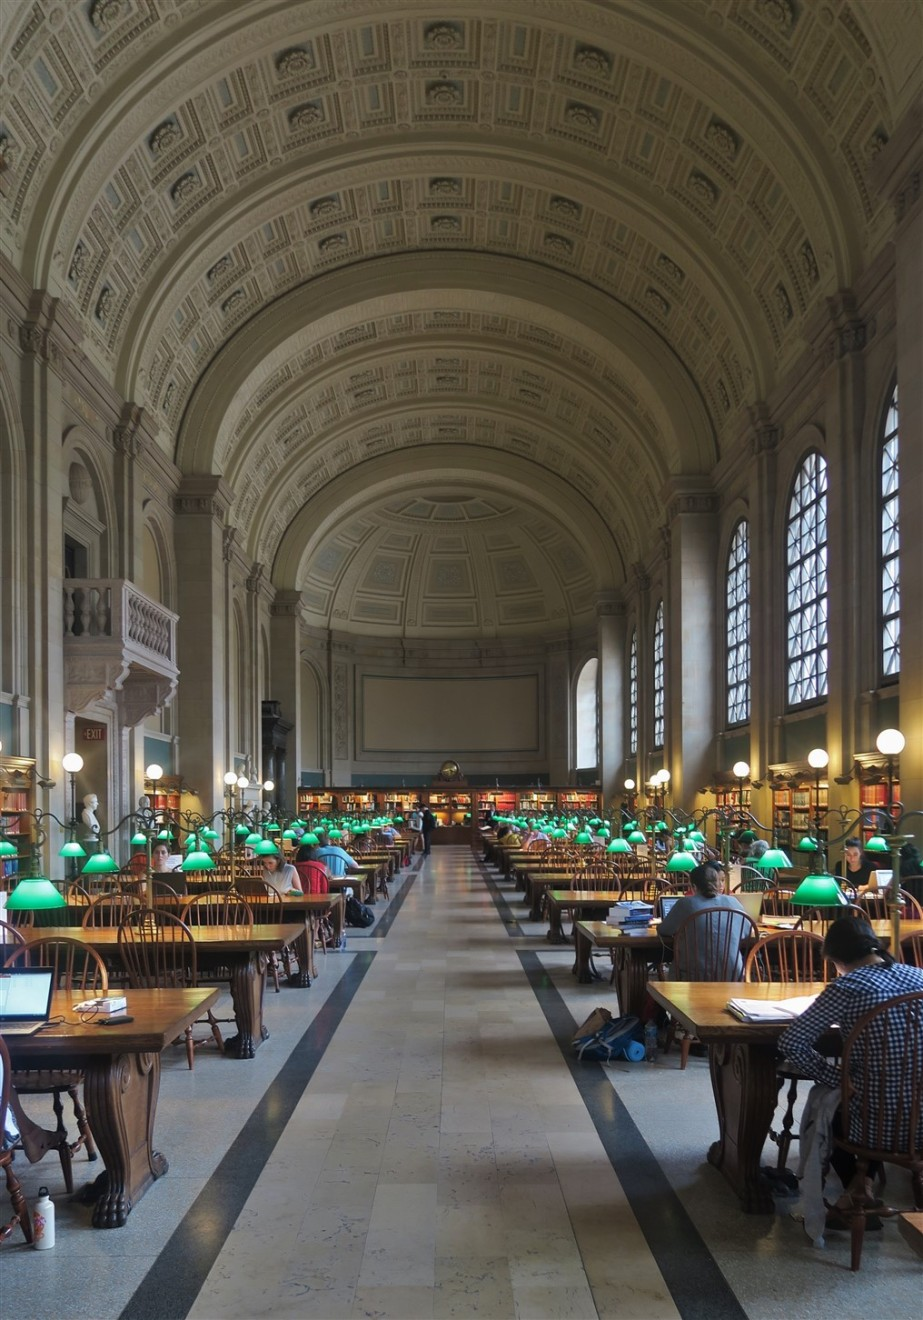 2016 09 01 134 Boston Main Library.jpg